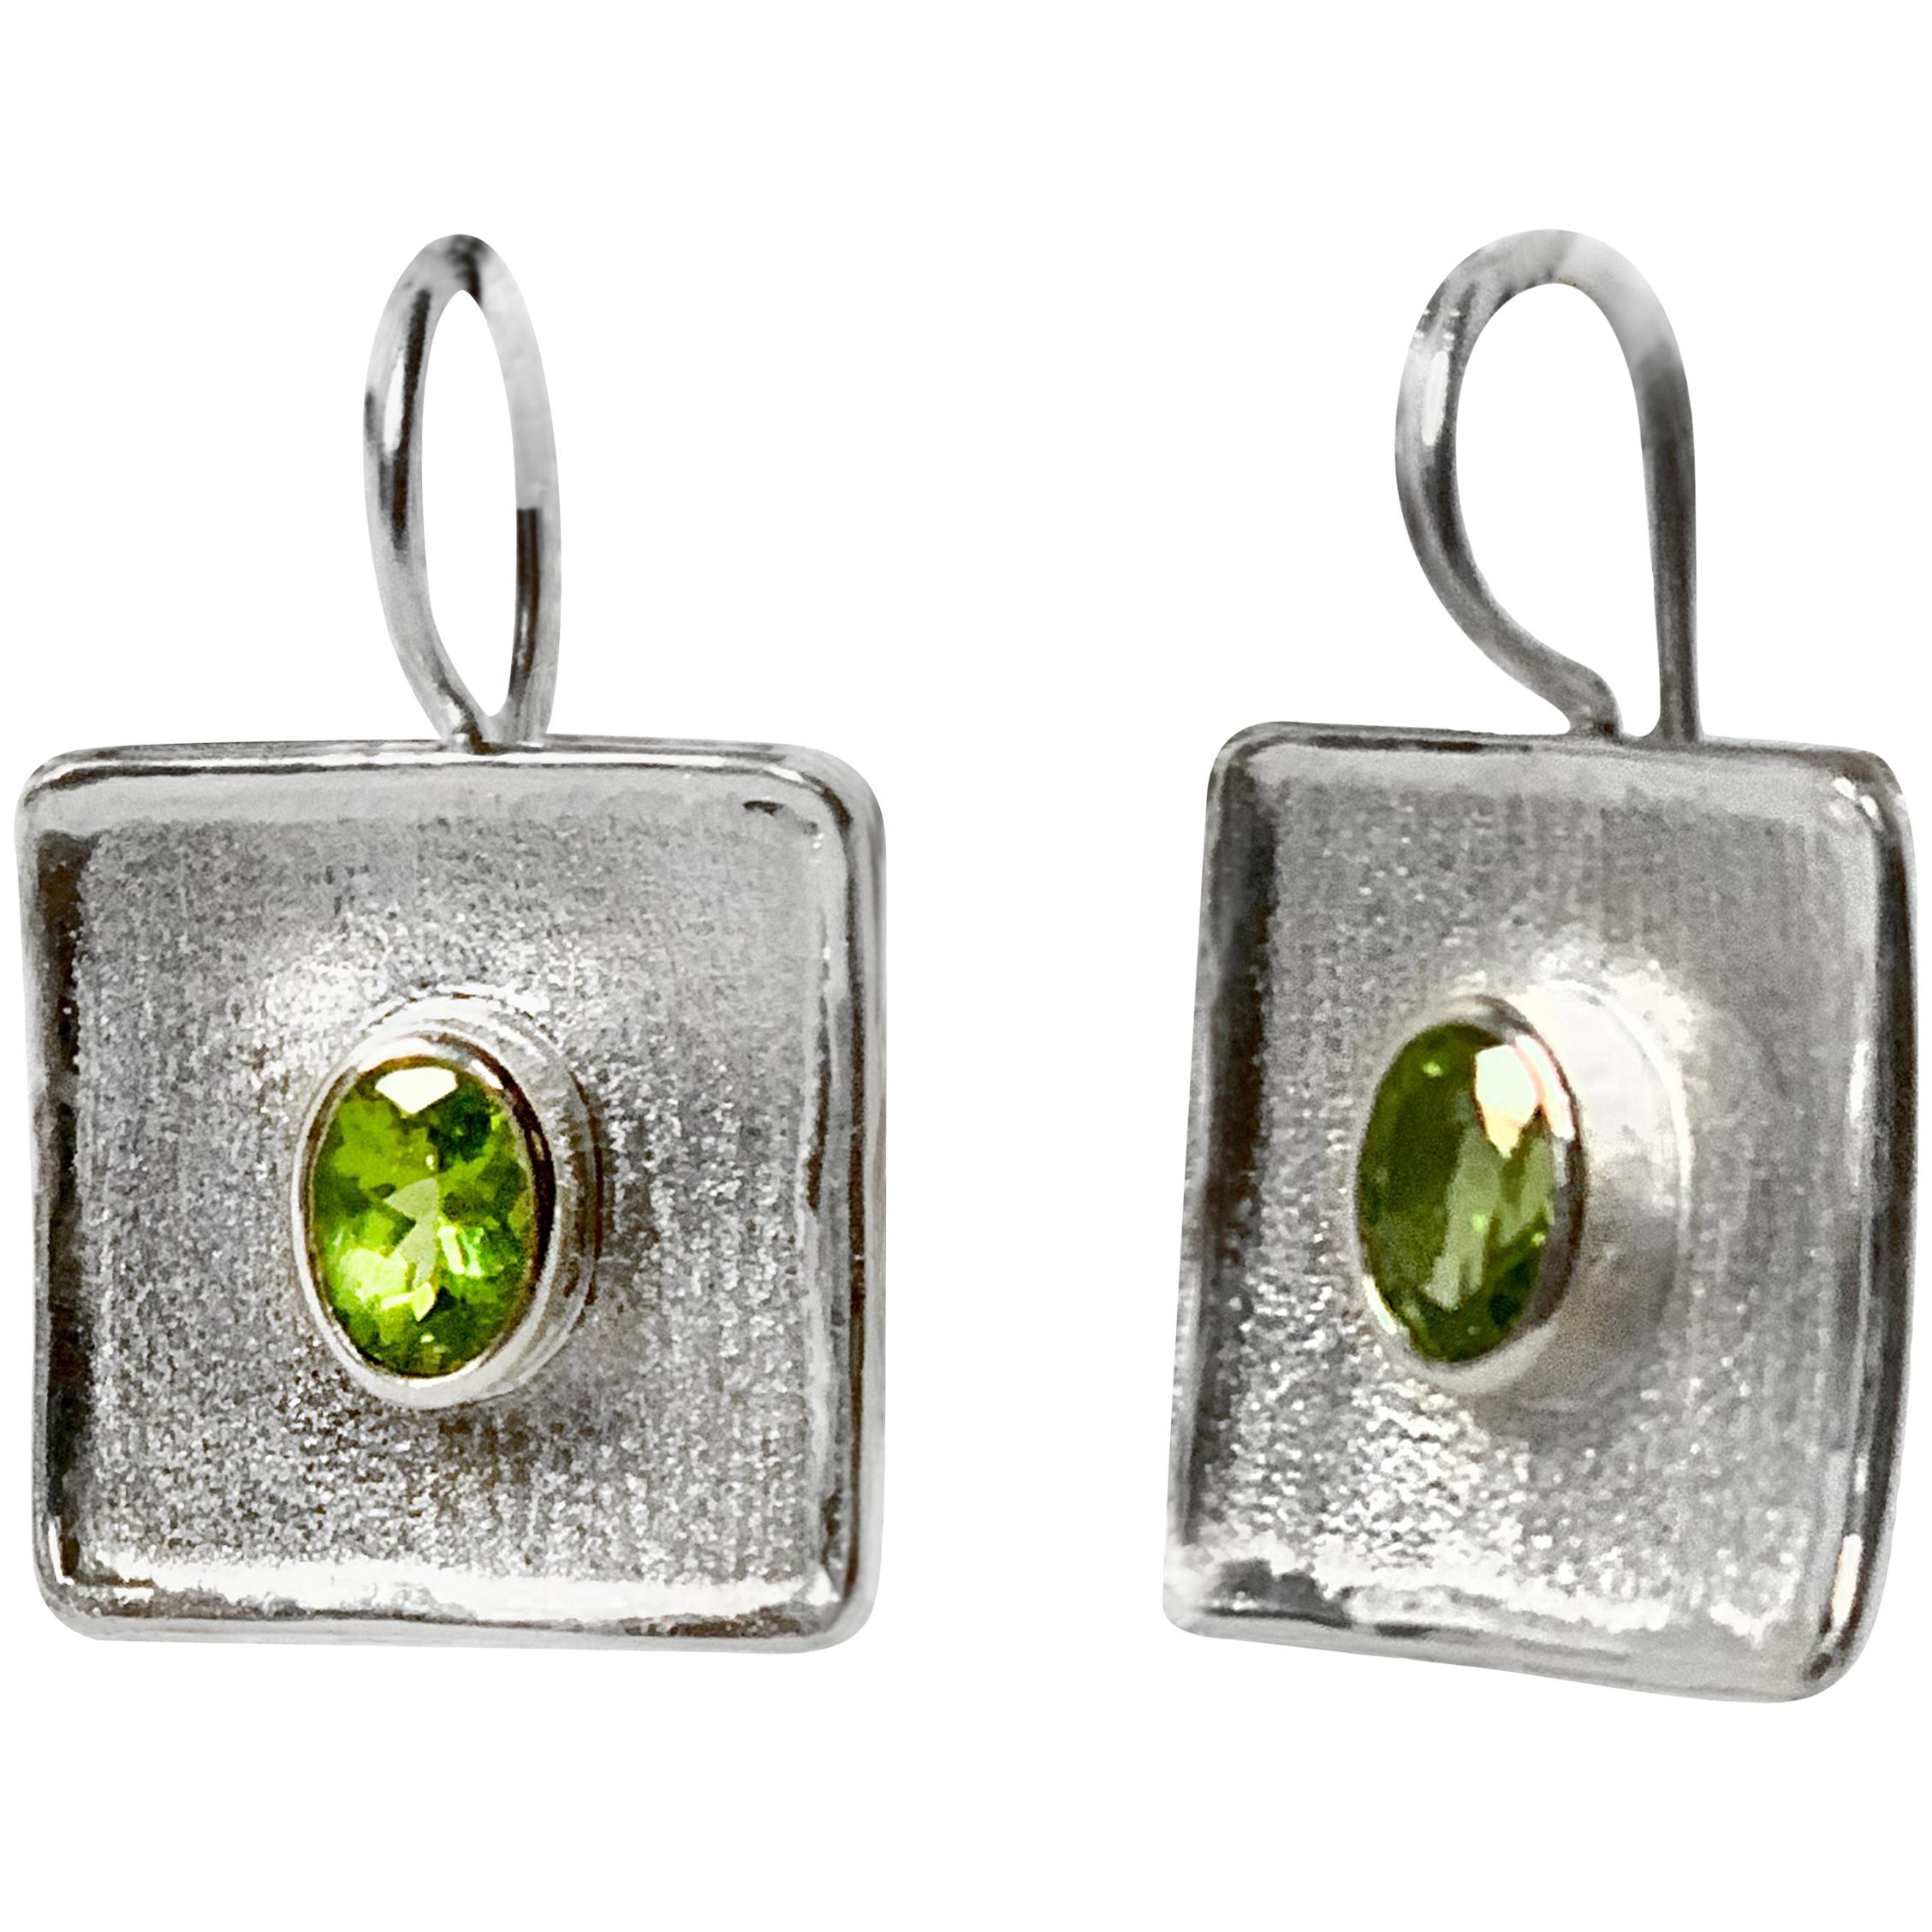 Yianni Creations 2.70 Carat Peridot Fine Silver and Palladium Square Earrings